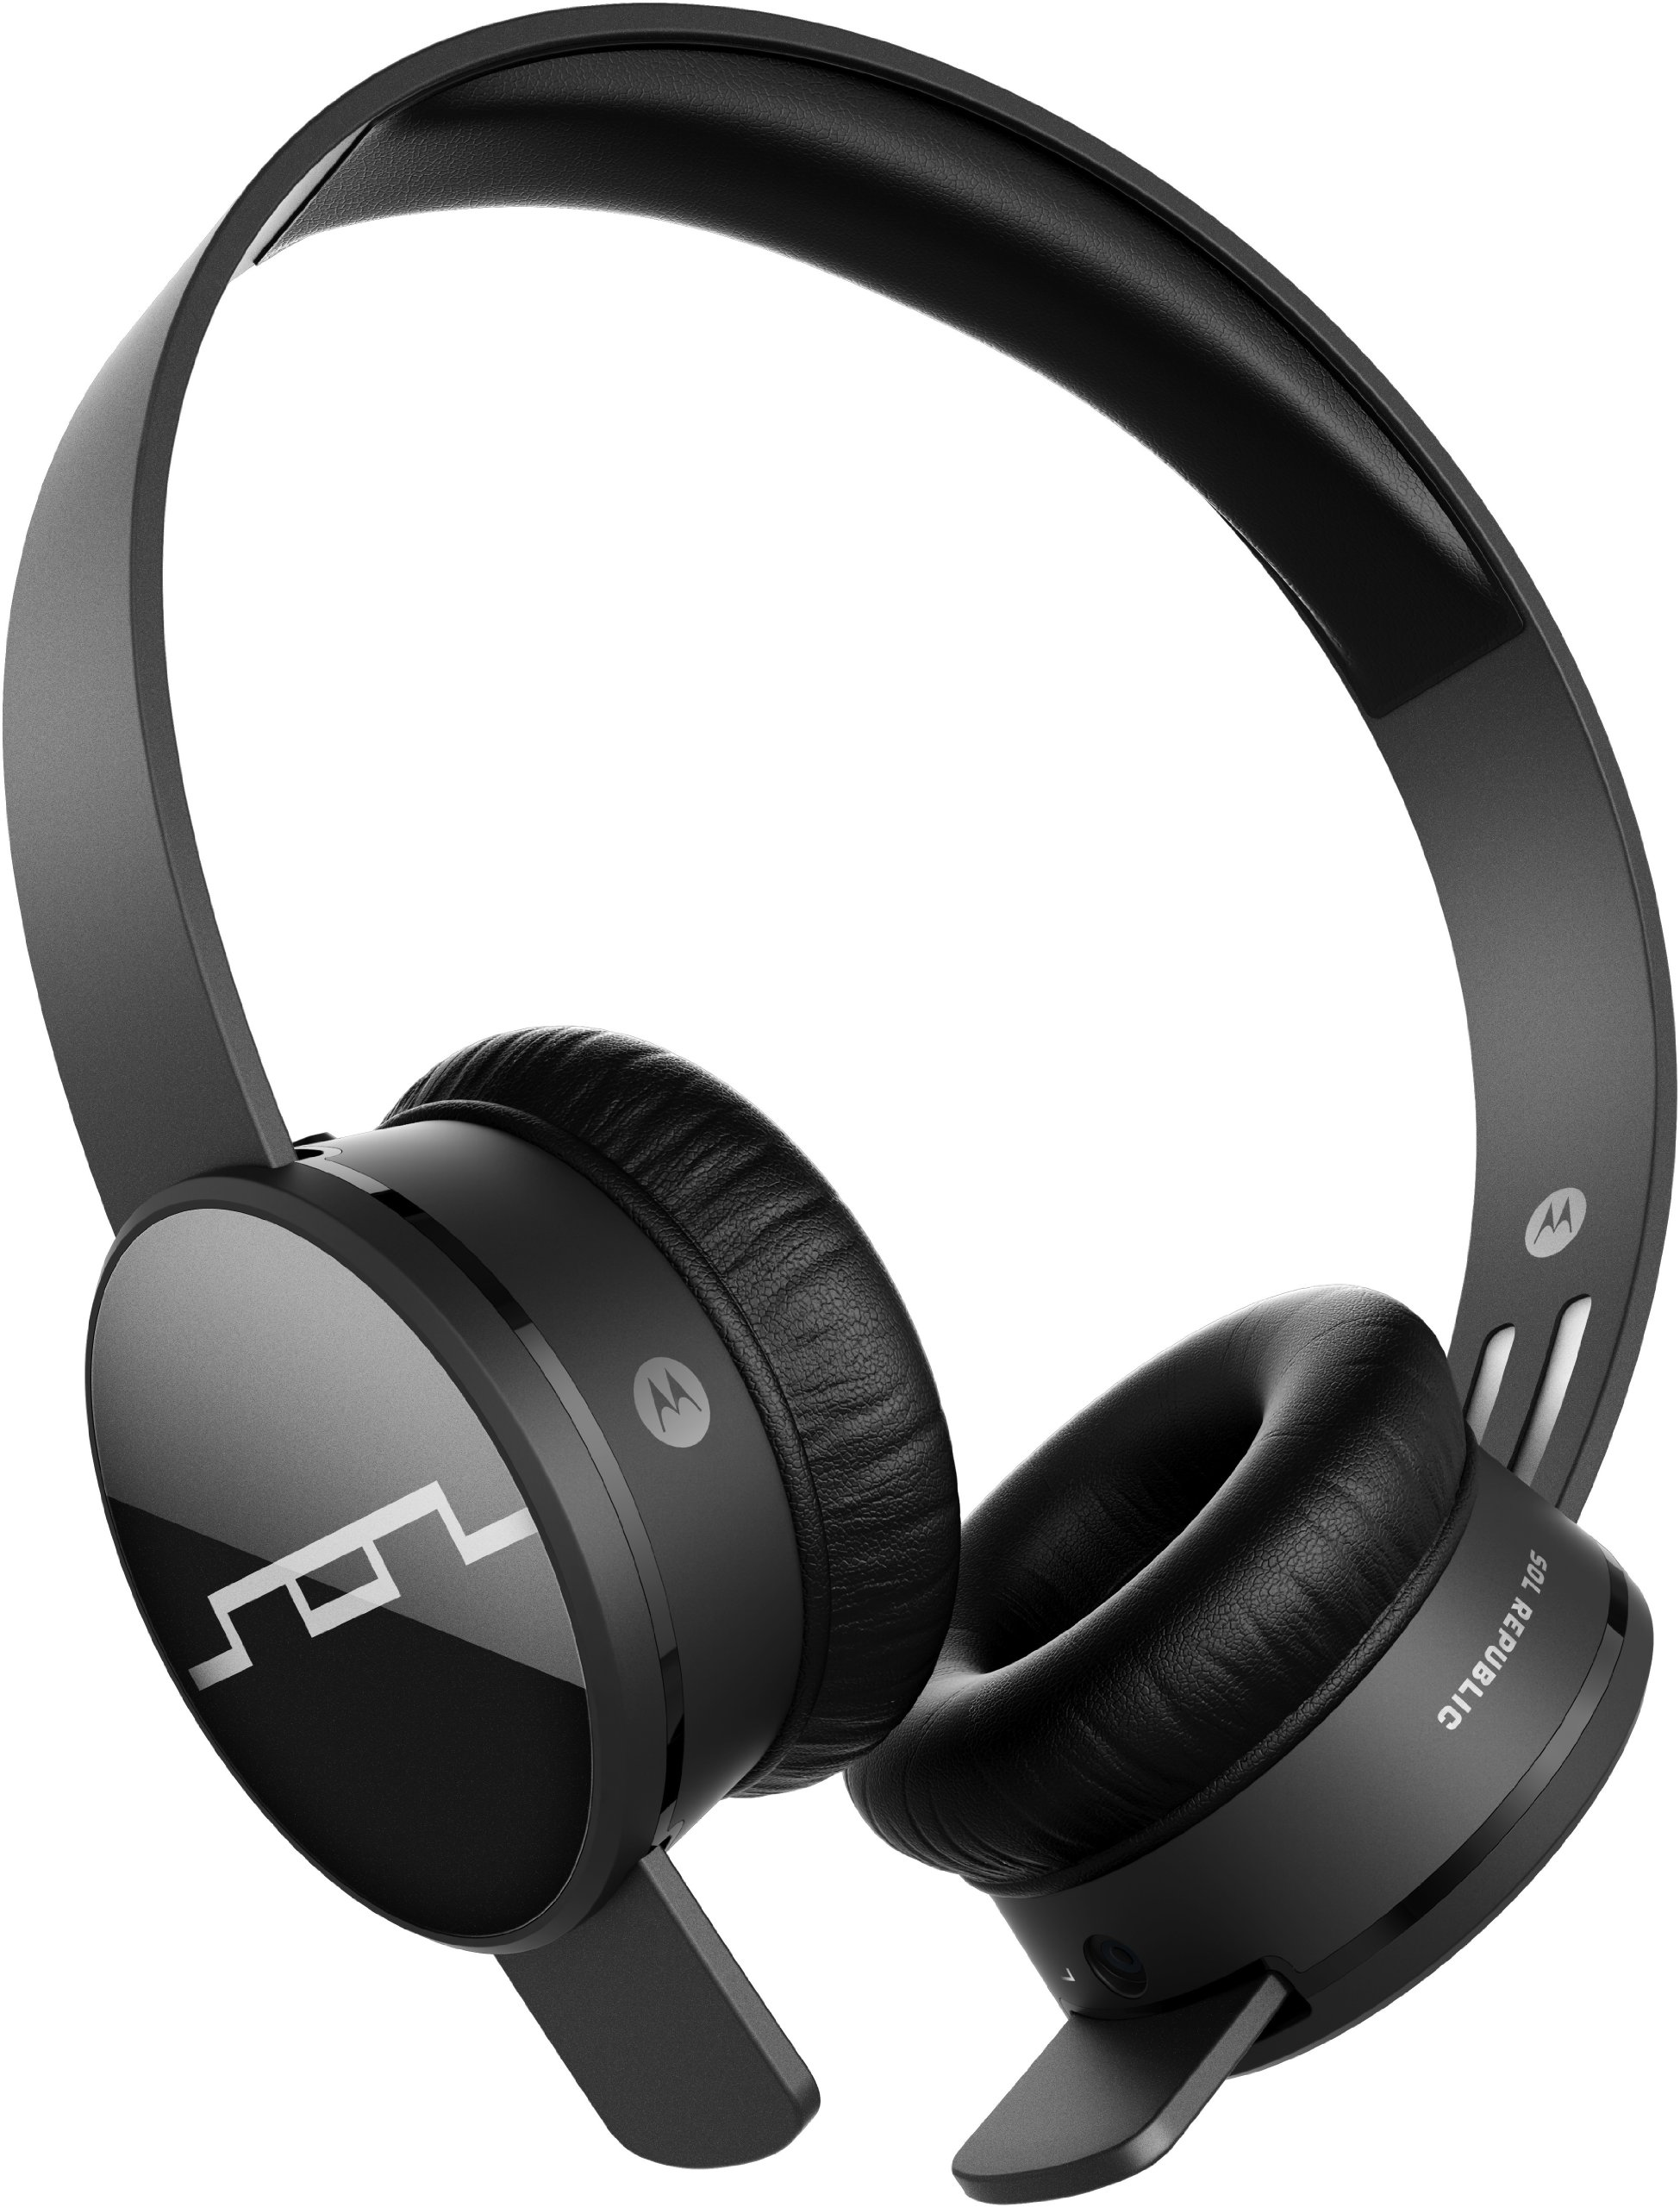 SOL REPUBLIC 1430-00 Tracks Air Wireless On-Ear Headphones, Gunmetal by SOL REPUBLIC